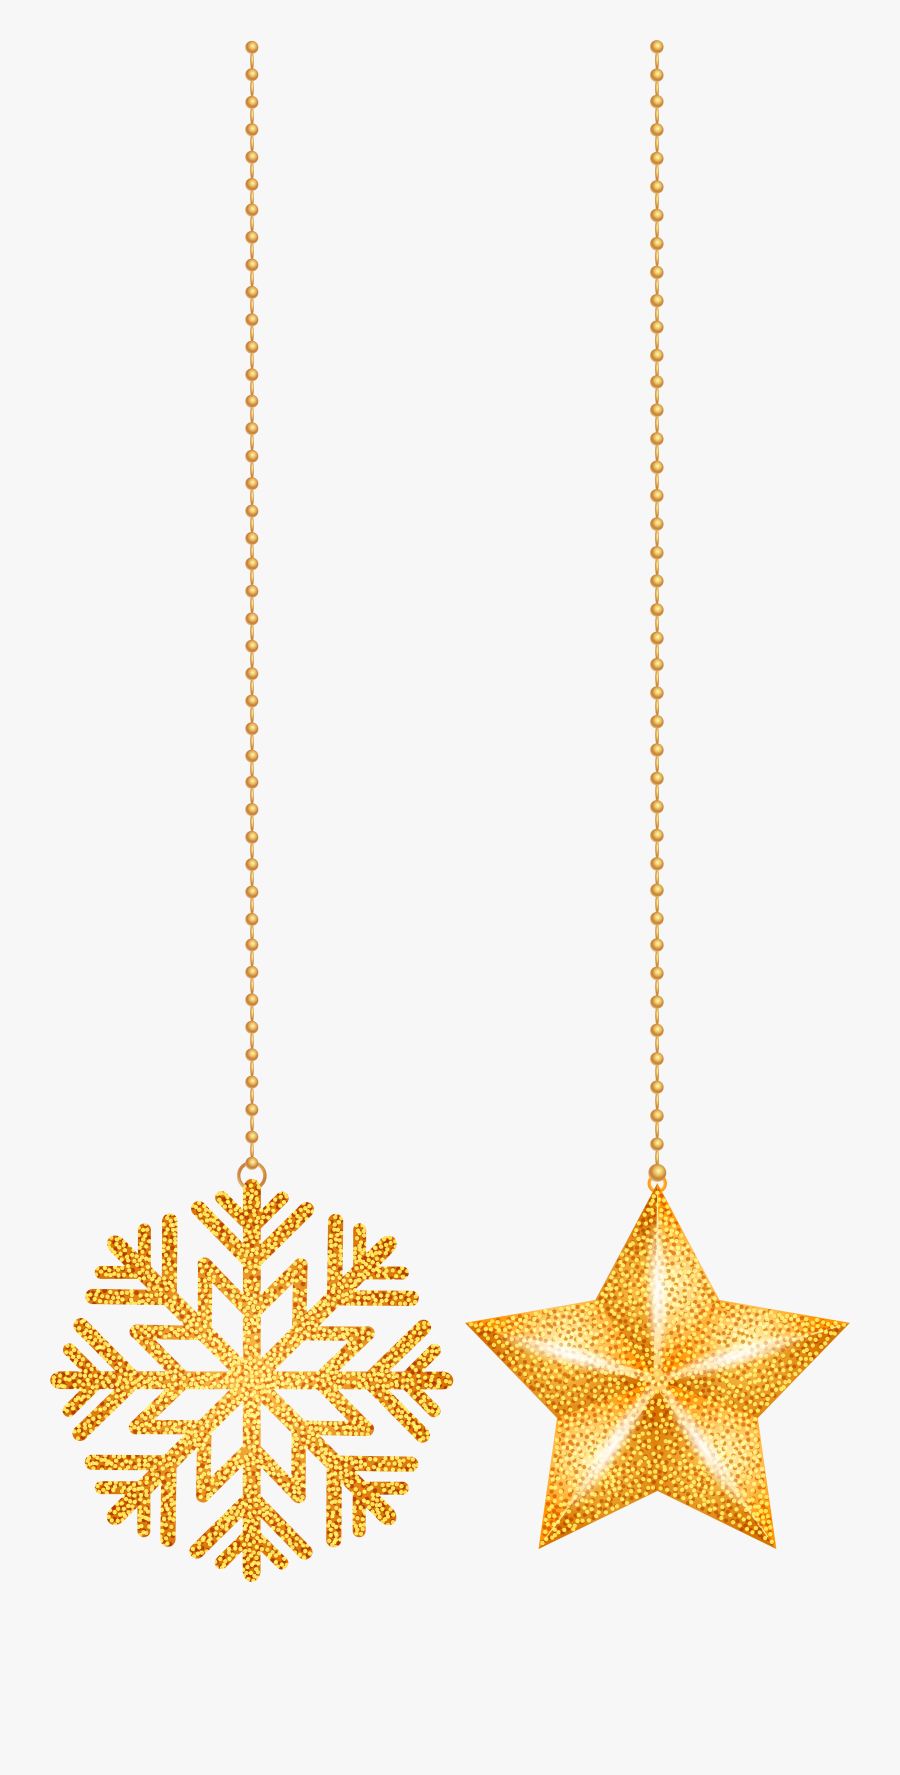 Transparent Gold Chain Gangster Png - Hanging Christmas Decoration Png, Transparent Clipart